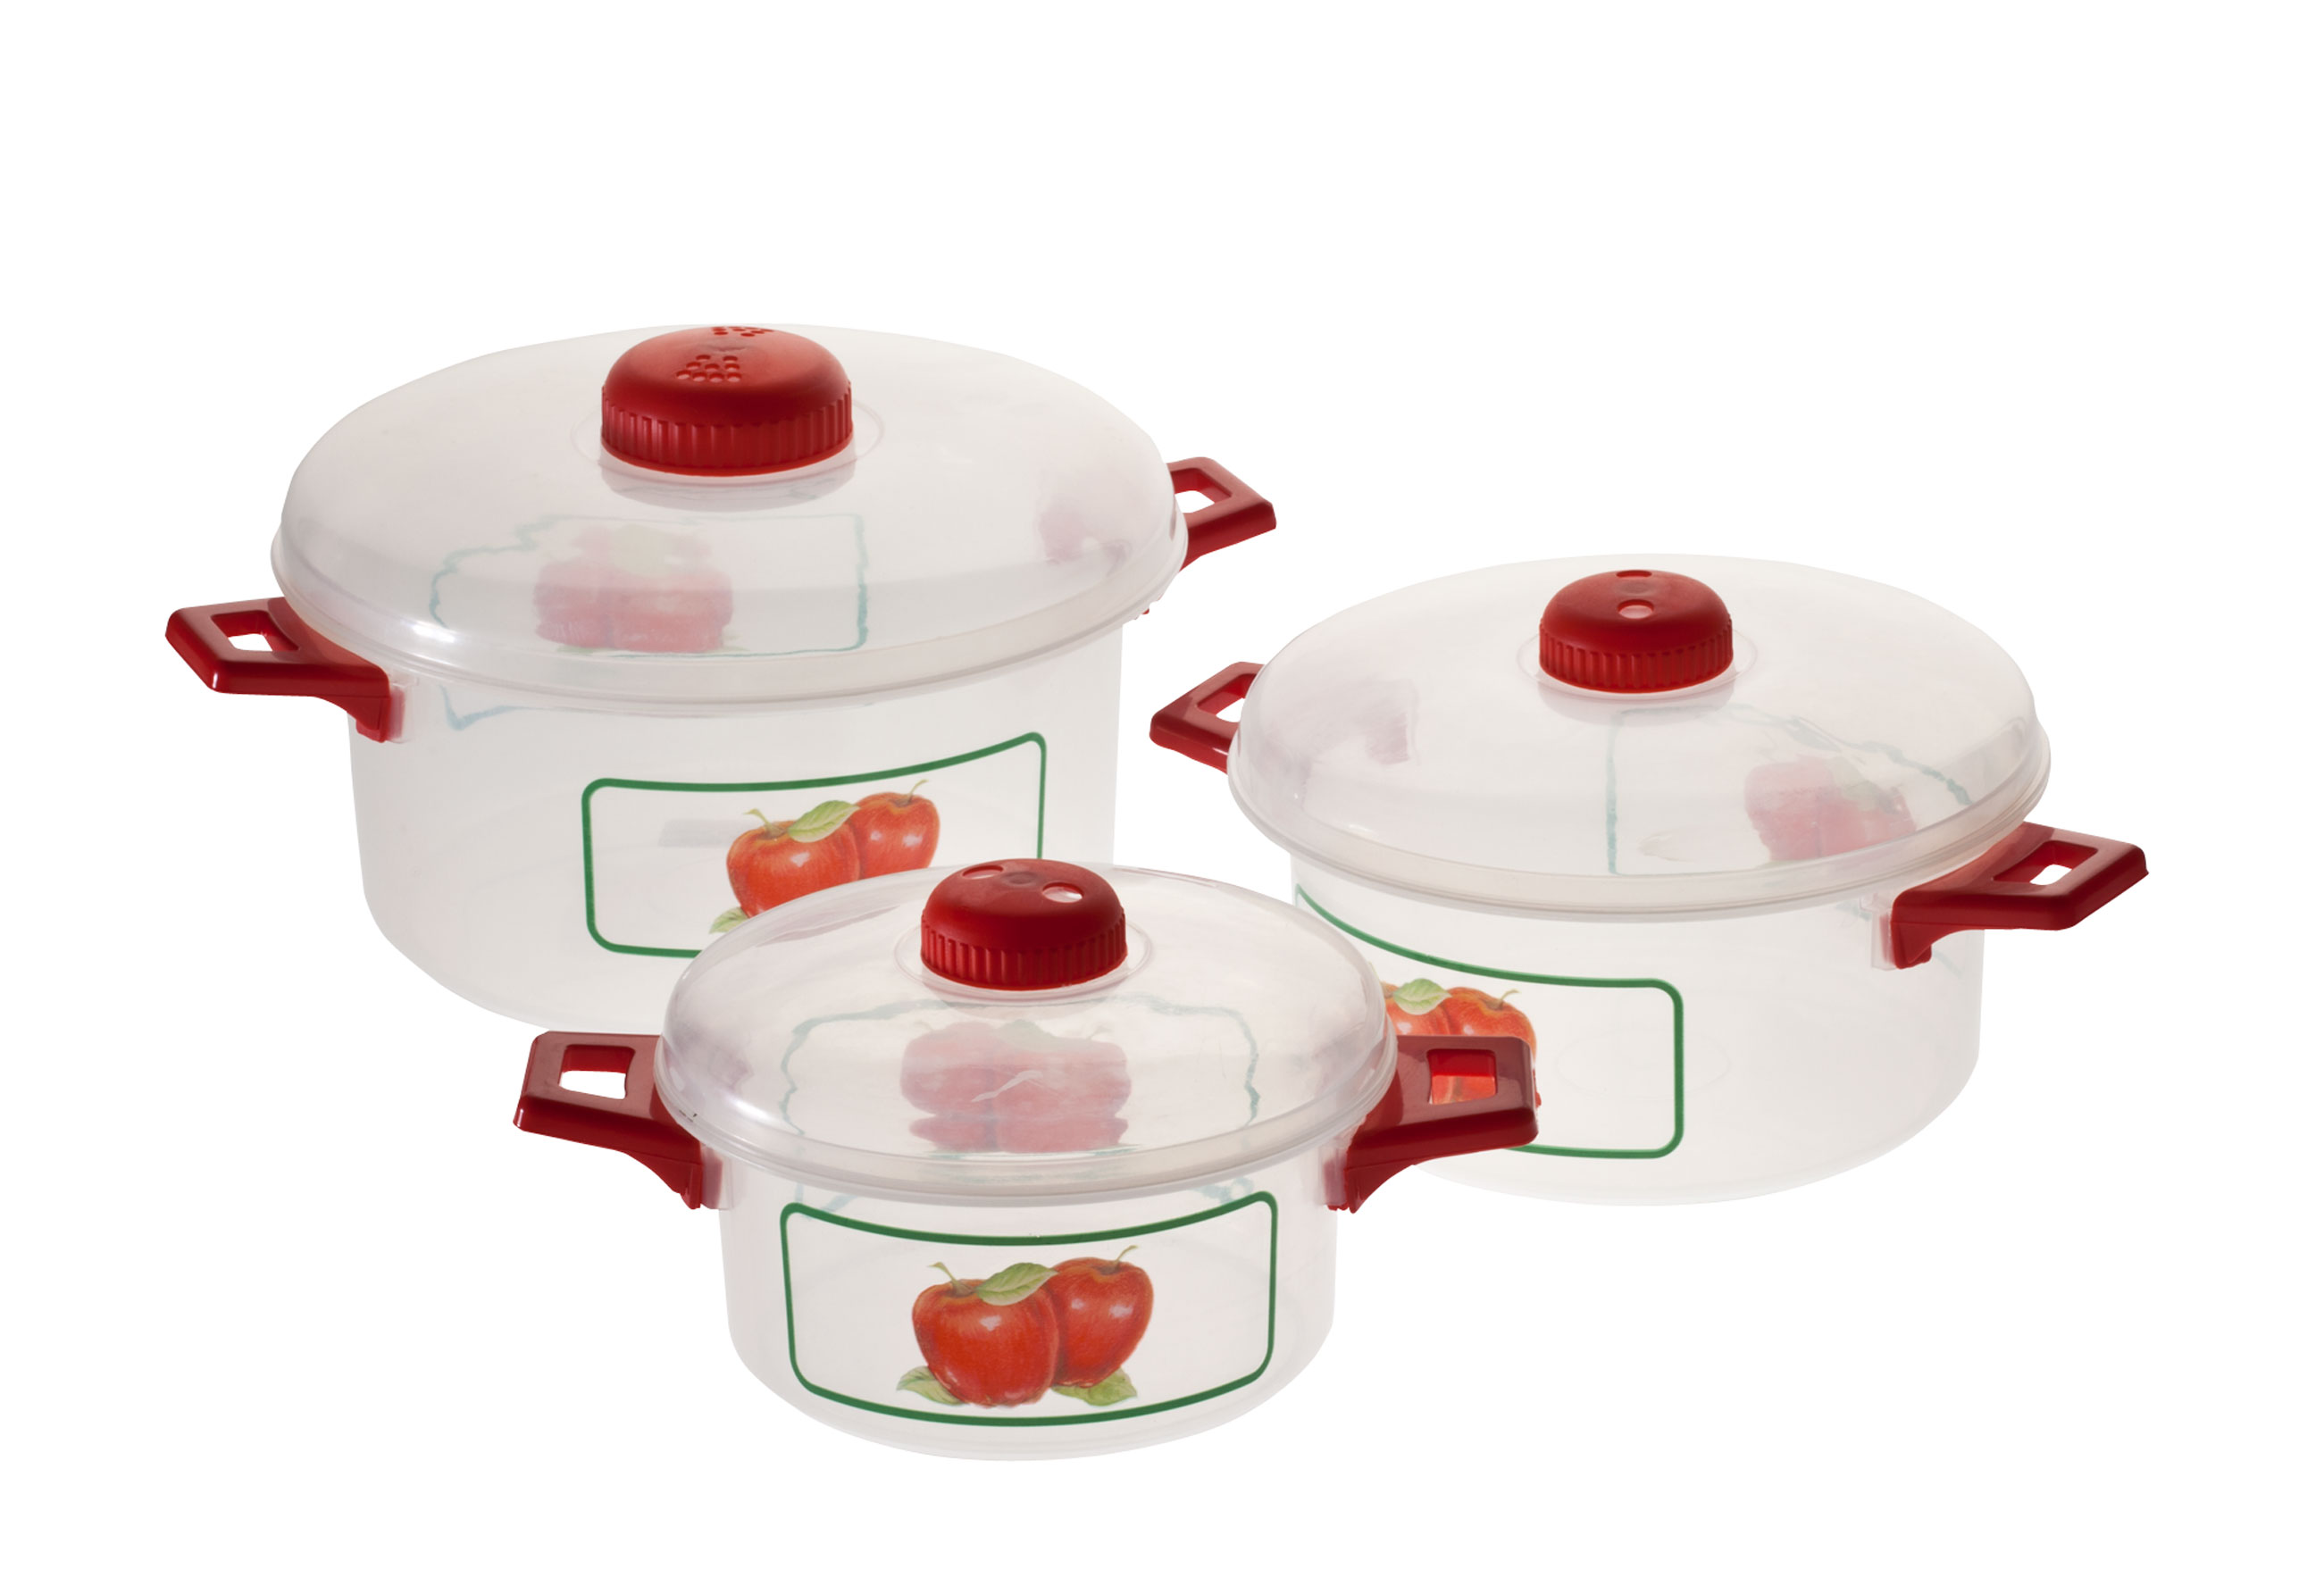 Microwave Pots with Apple Design, 6 Piece Set Get more out of your microwave with these charming microwave pots with apple design. Versatile microwave cookware set includes pots in 3 sizes, each with a vented lid to release pressure and stop splatters -- for worry-free cooking and great results. Stacking cooking pots feature a classic apple motif, colorful handles and matching lids. Set includes 3 sizes: 12, 7 and 4 cups. Durable plastic is dishwasher safe.